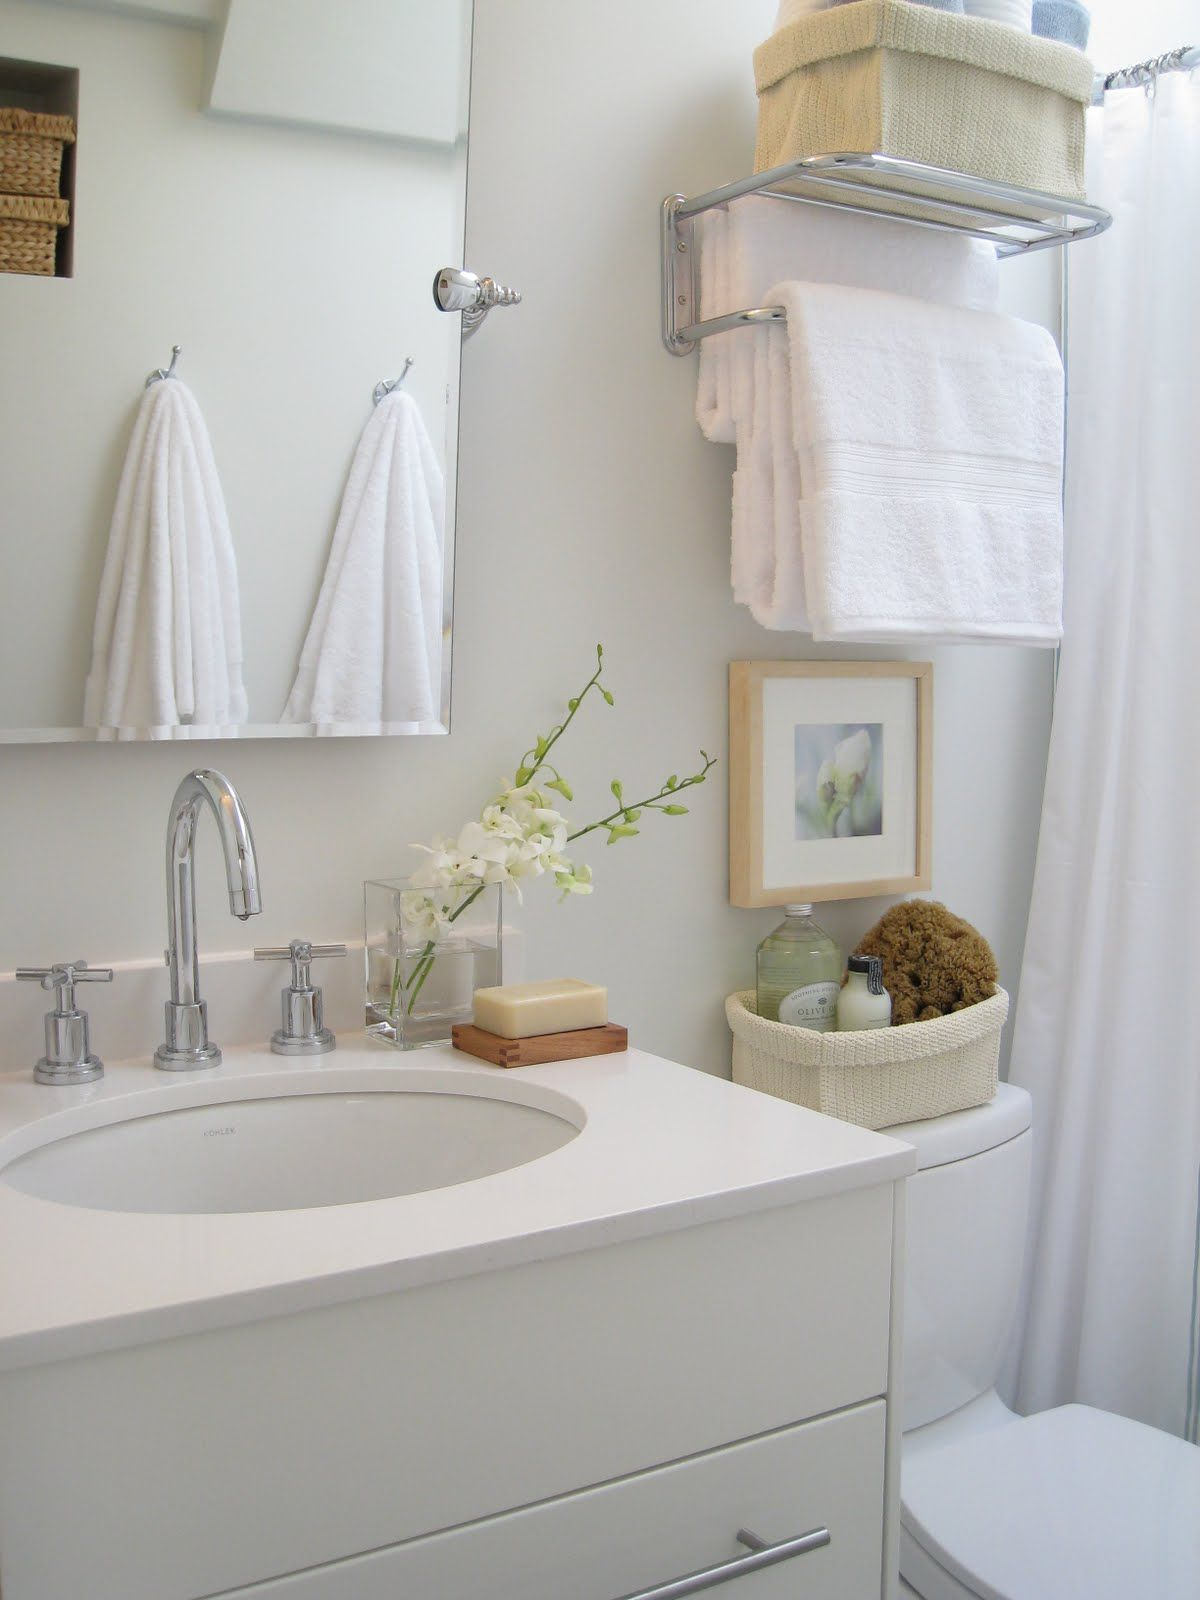 Bathroom storage ideas Creative storage ideas